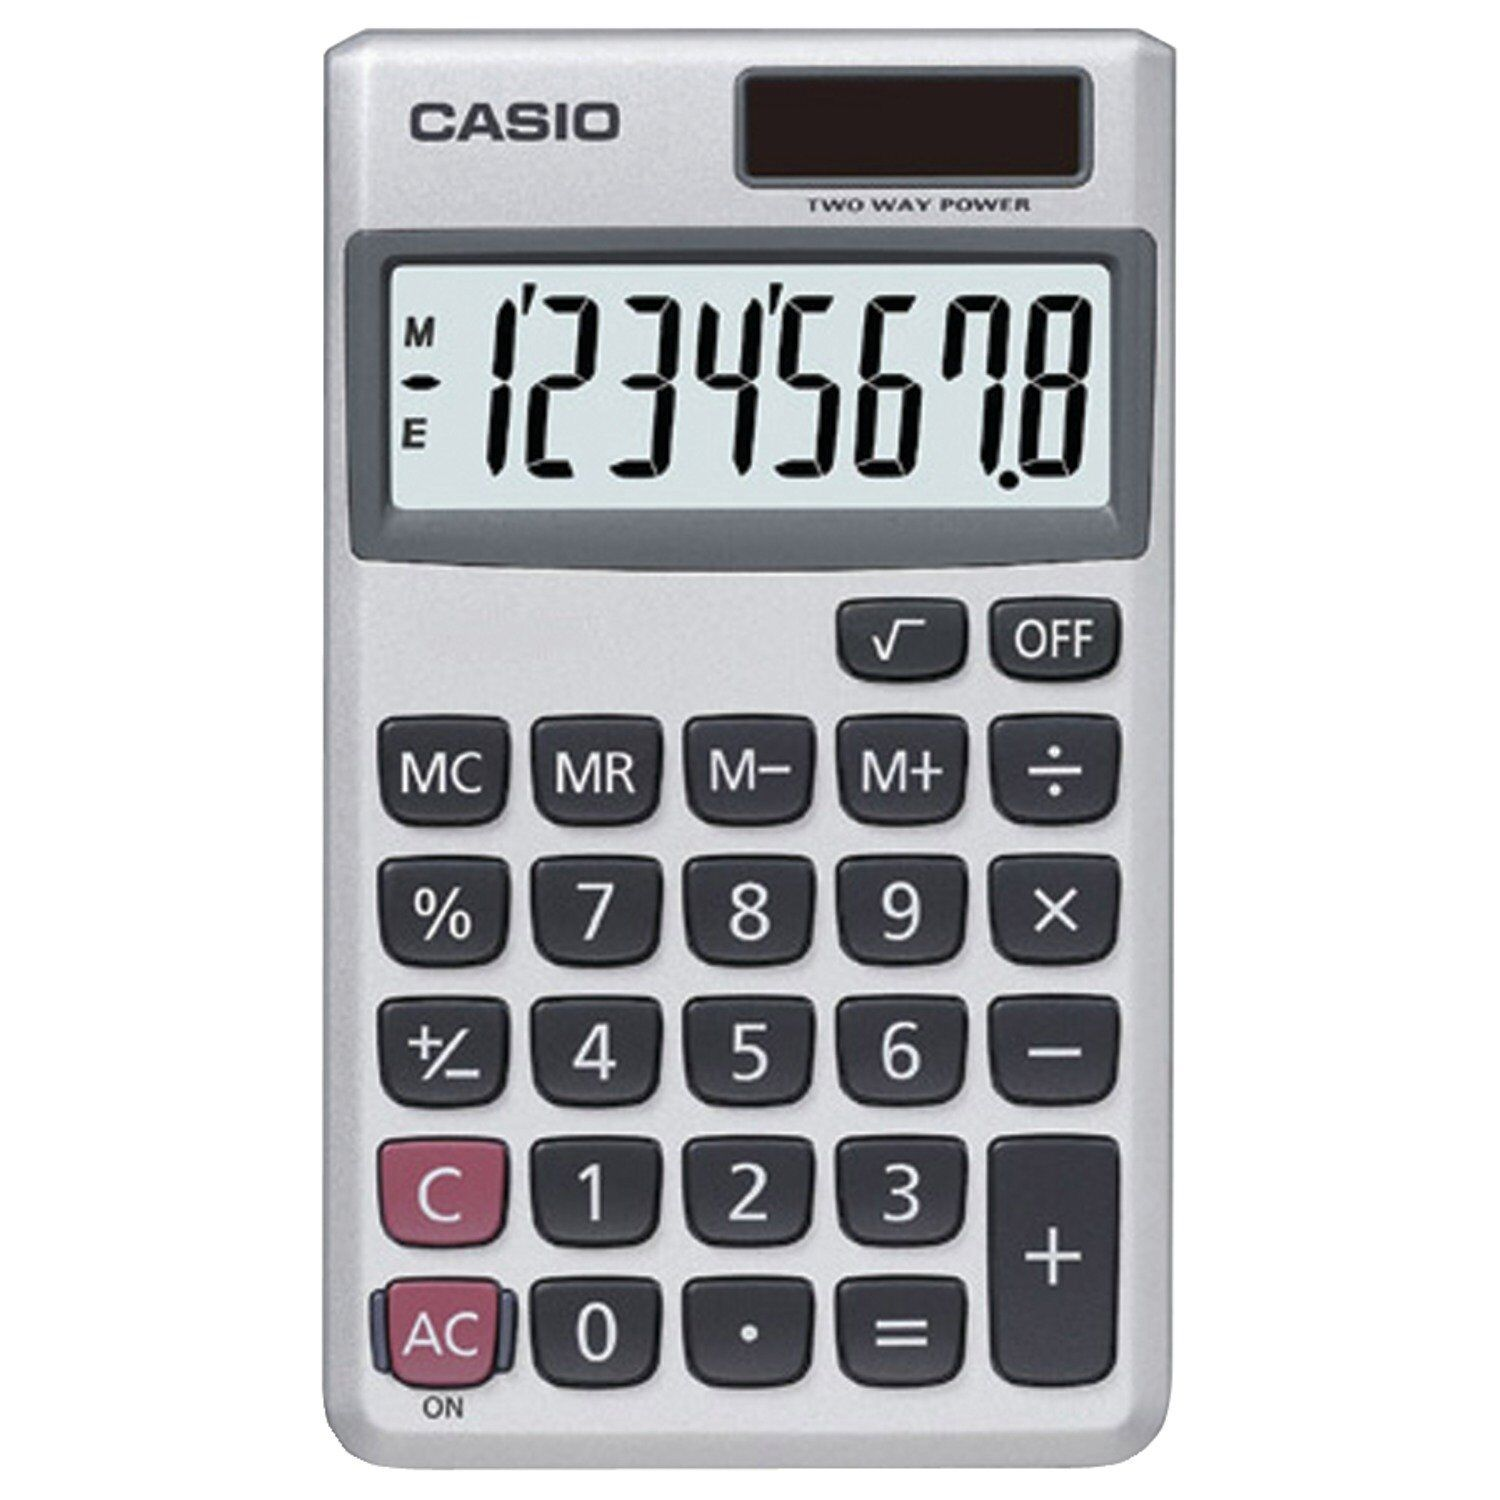 Casio Wallet Style Pocket Calculator, SL-300SV